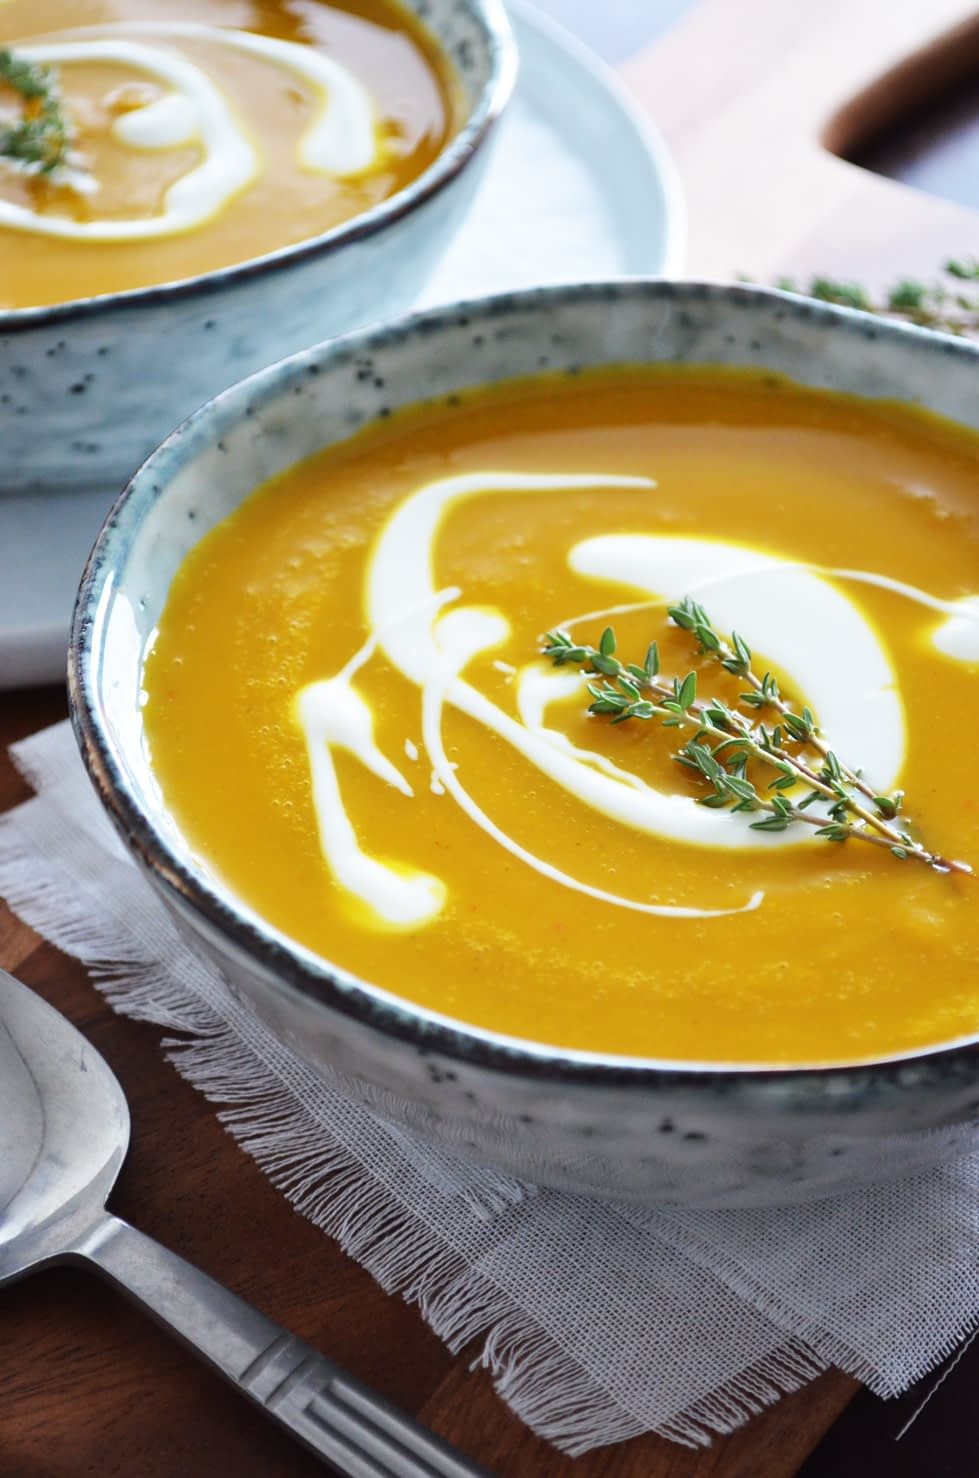 A recipe for Pumpkin Soup with Harissa and Orange. This soup is great to enjoy as lunch or as a light post-holiday dinner. The spicy Harissa paste and the orange juice and zest give the soup a North-African/Middle Eastern vibe. Recipe by That Healthy Kitchen